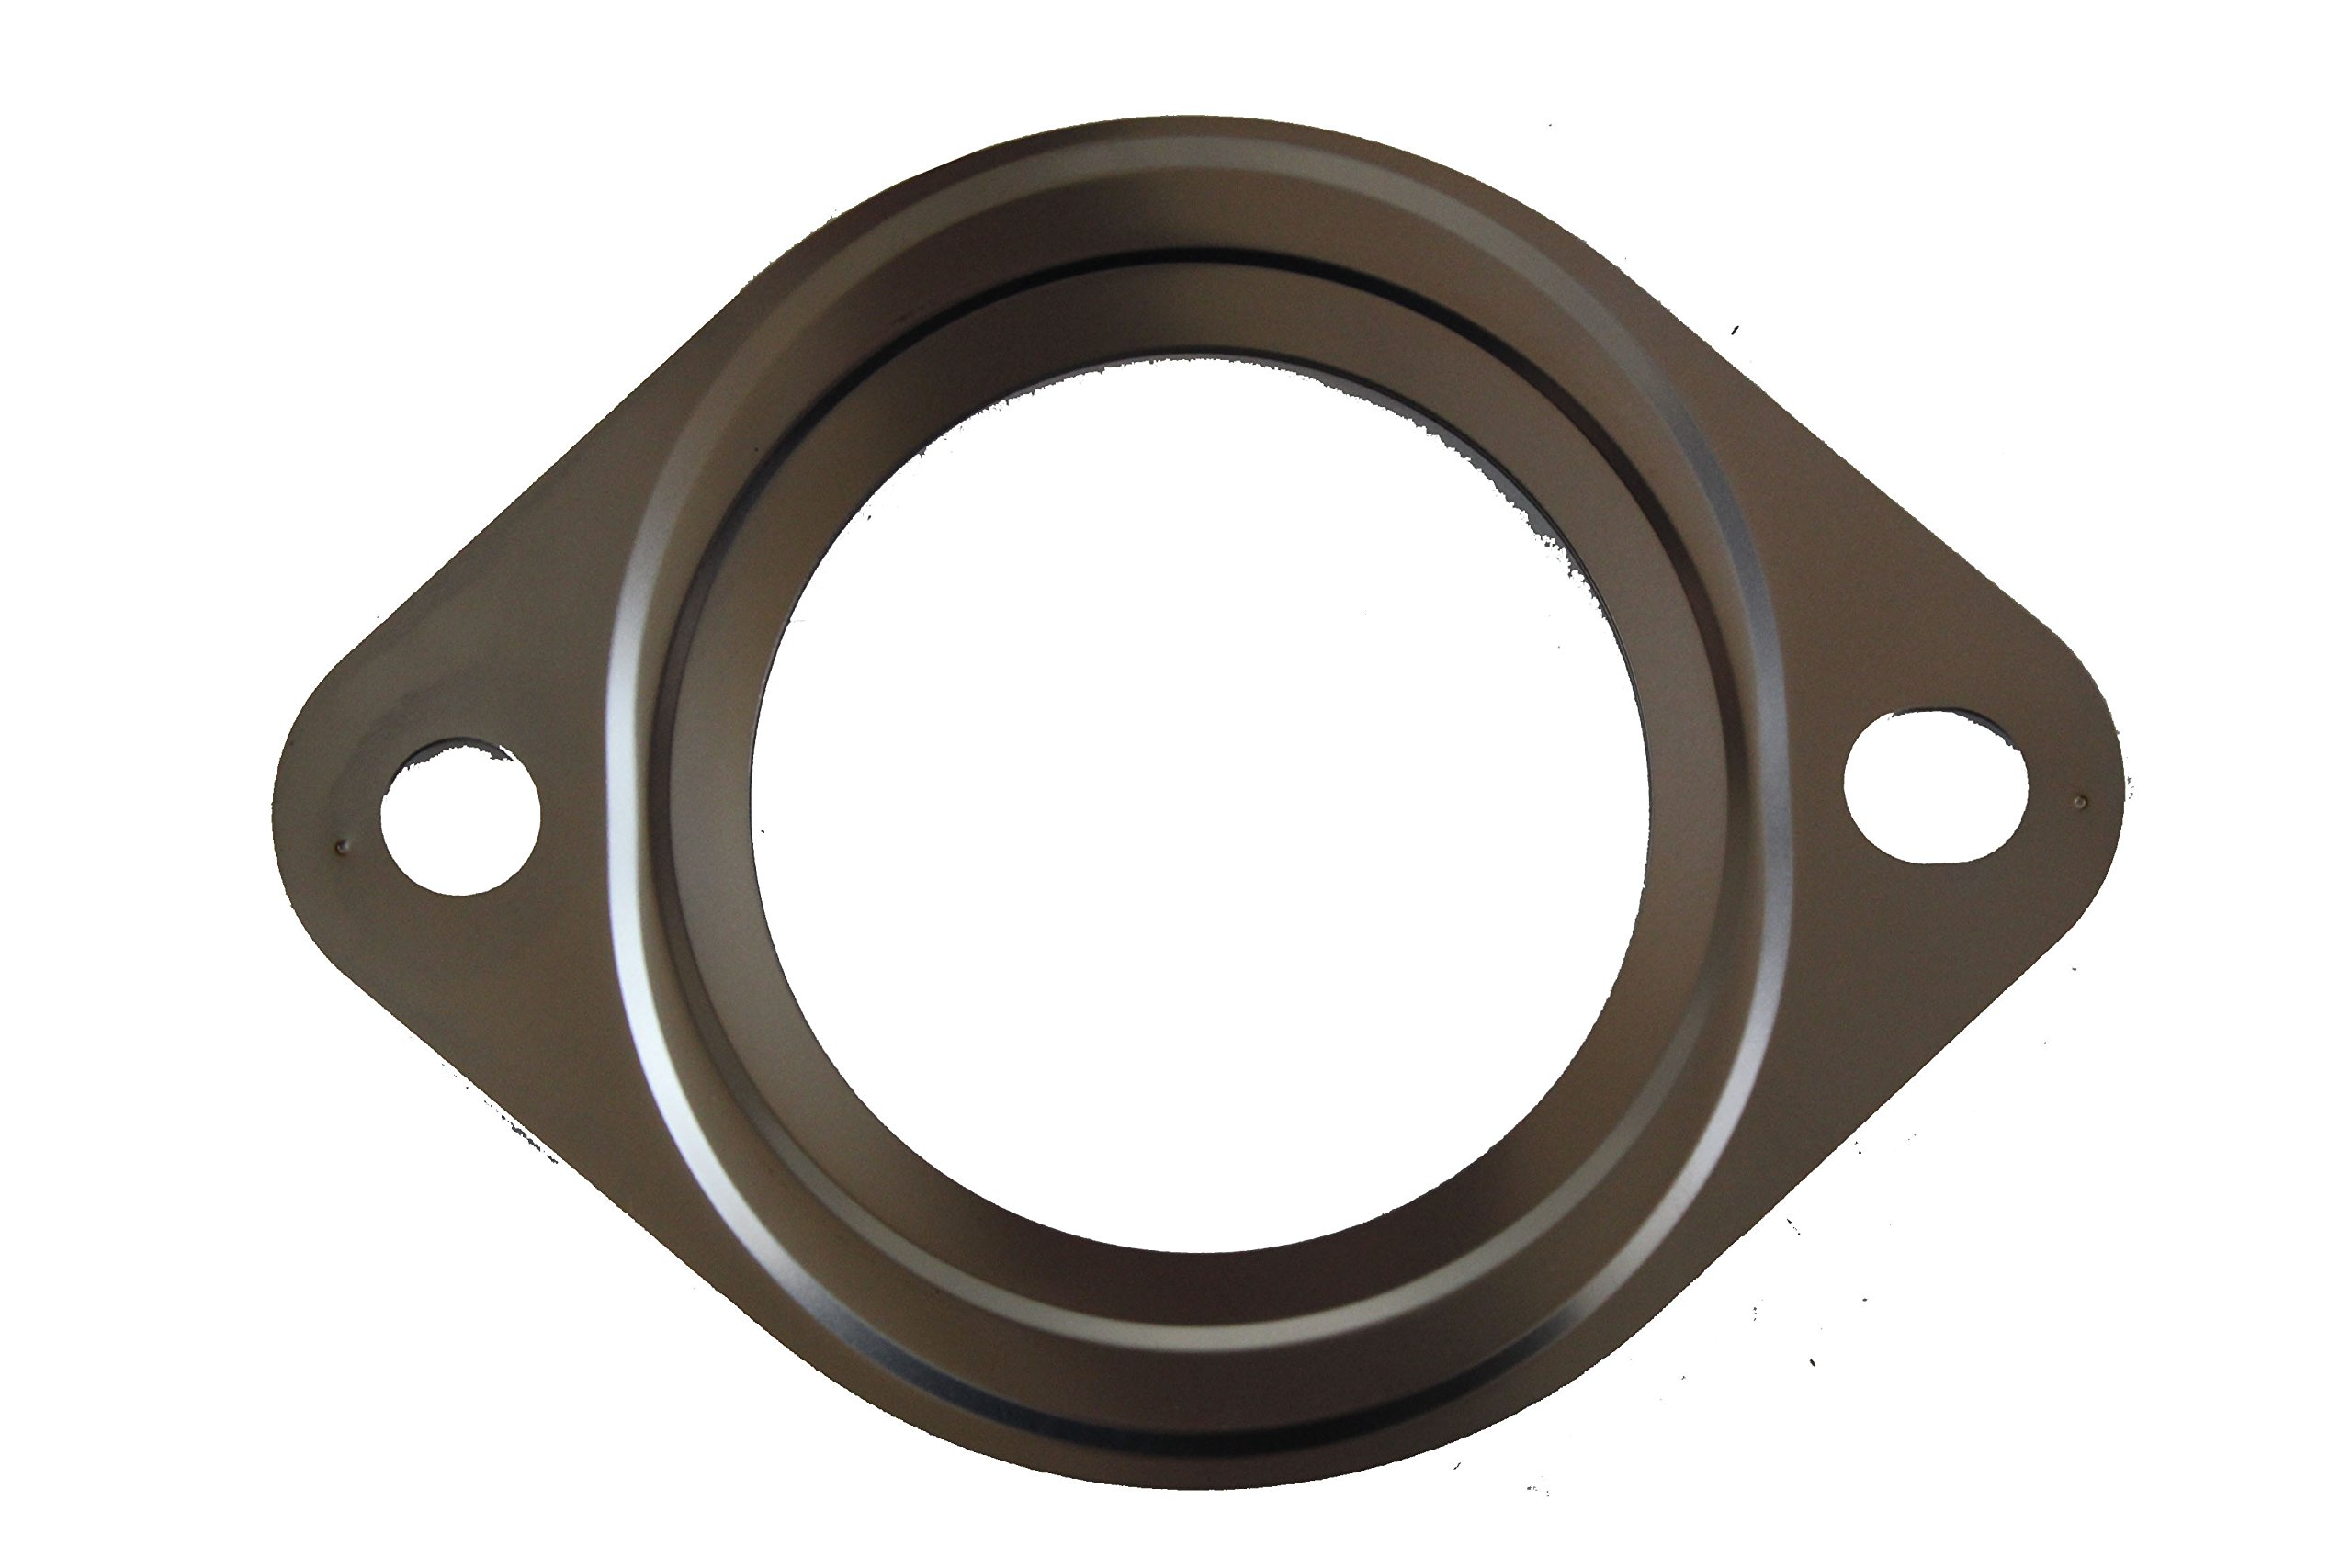 Genuine Nissan 20692-65J00 Exhaust Pipe Gasket